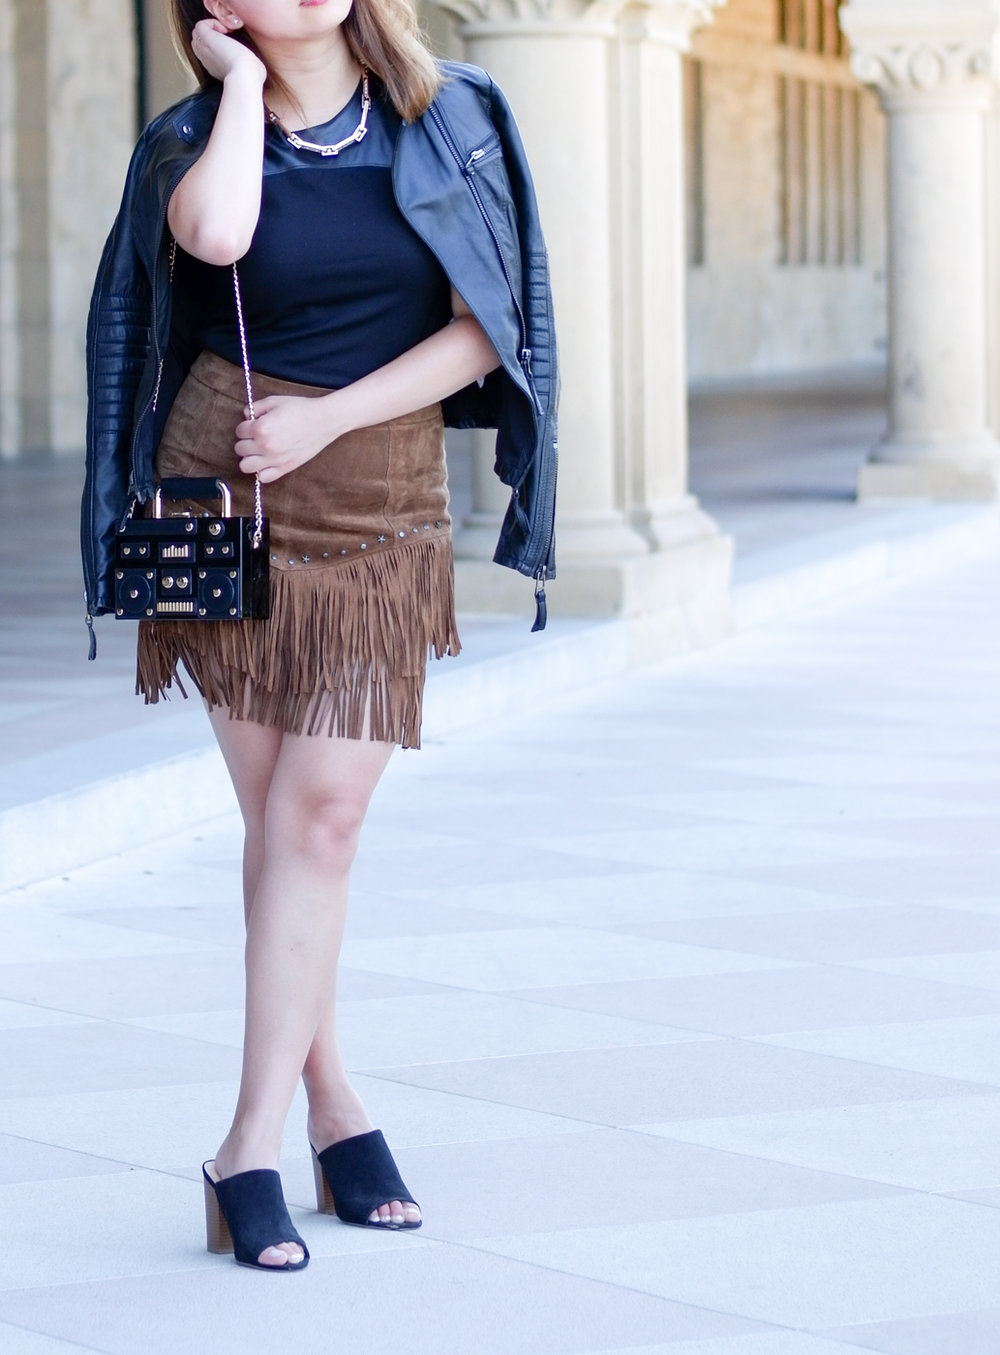 Leather moto jacket, fringe skirt, black mules | The Chic Diary